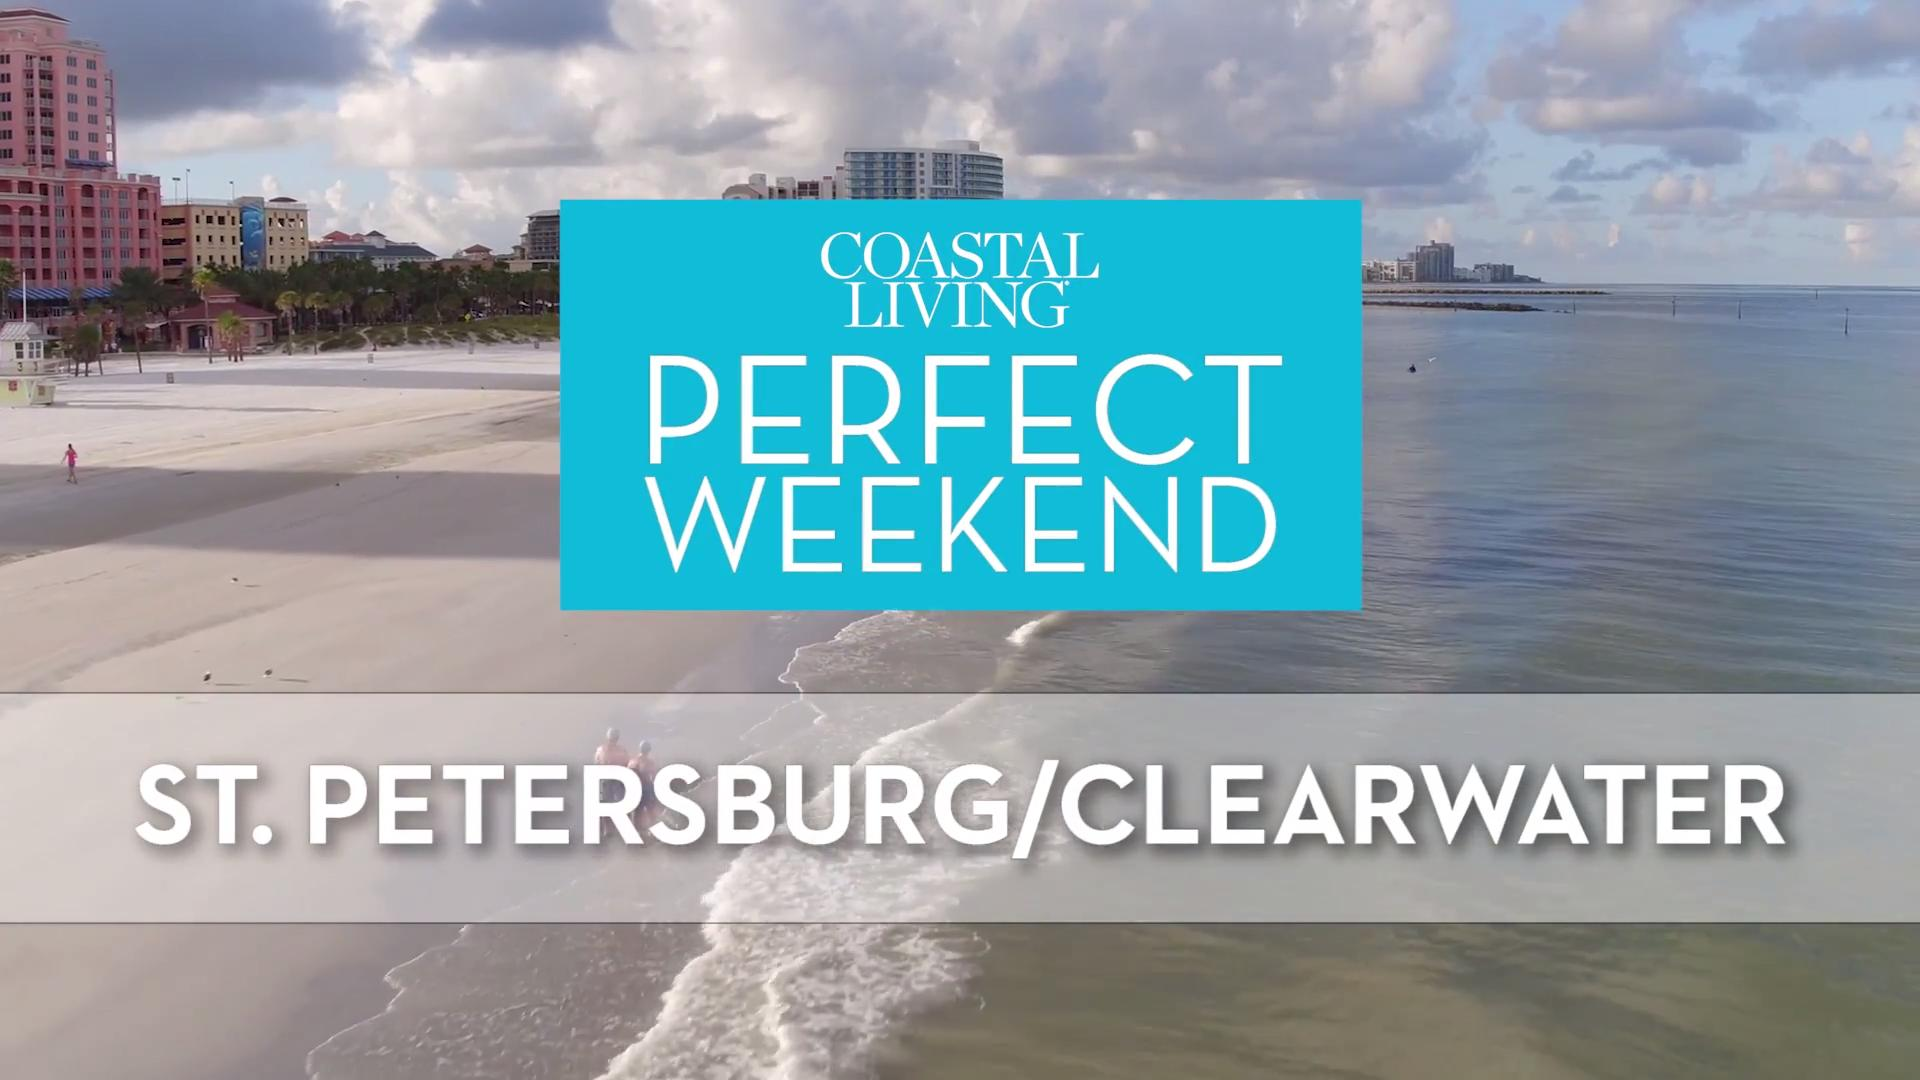 Best Places to Live: St. Petersburg, Florida